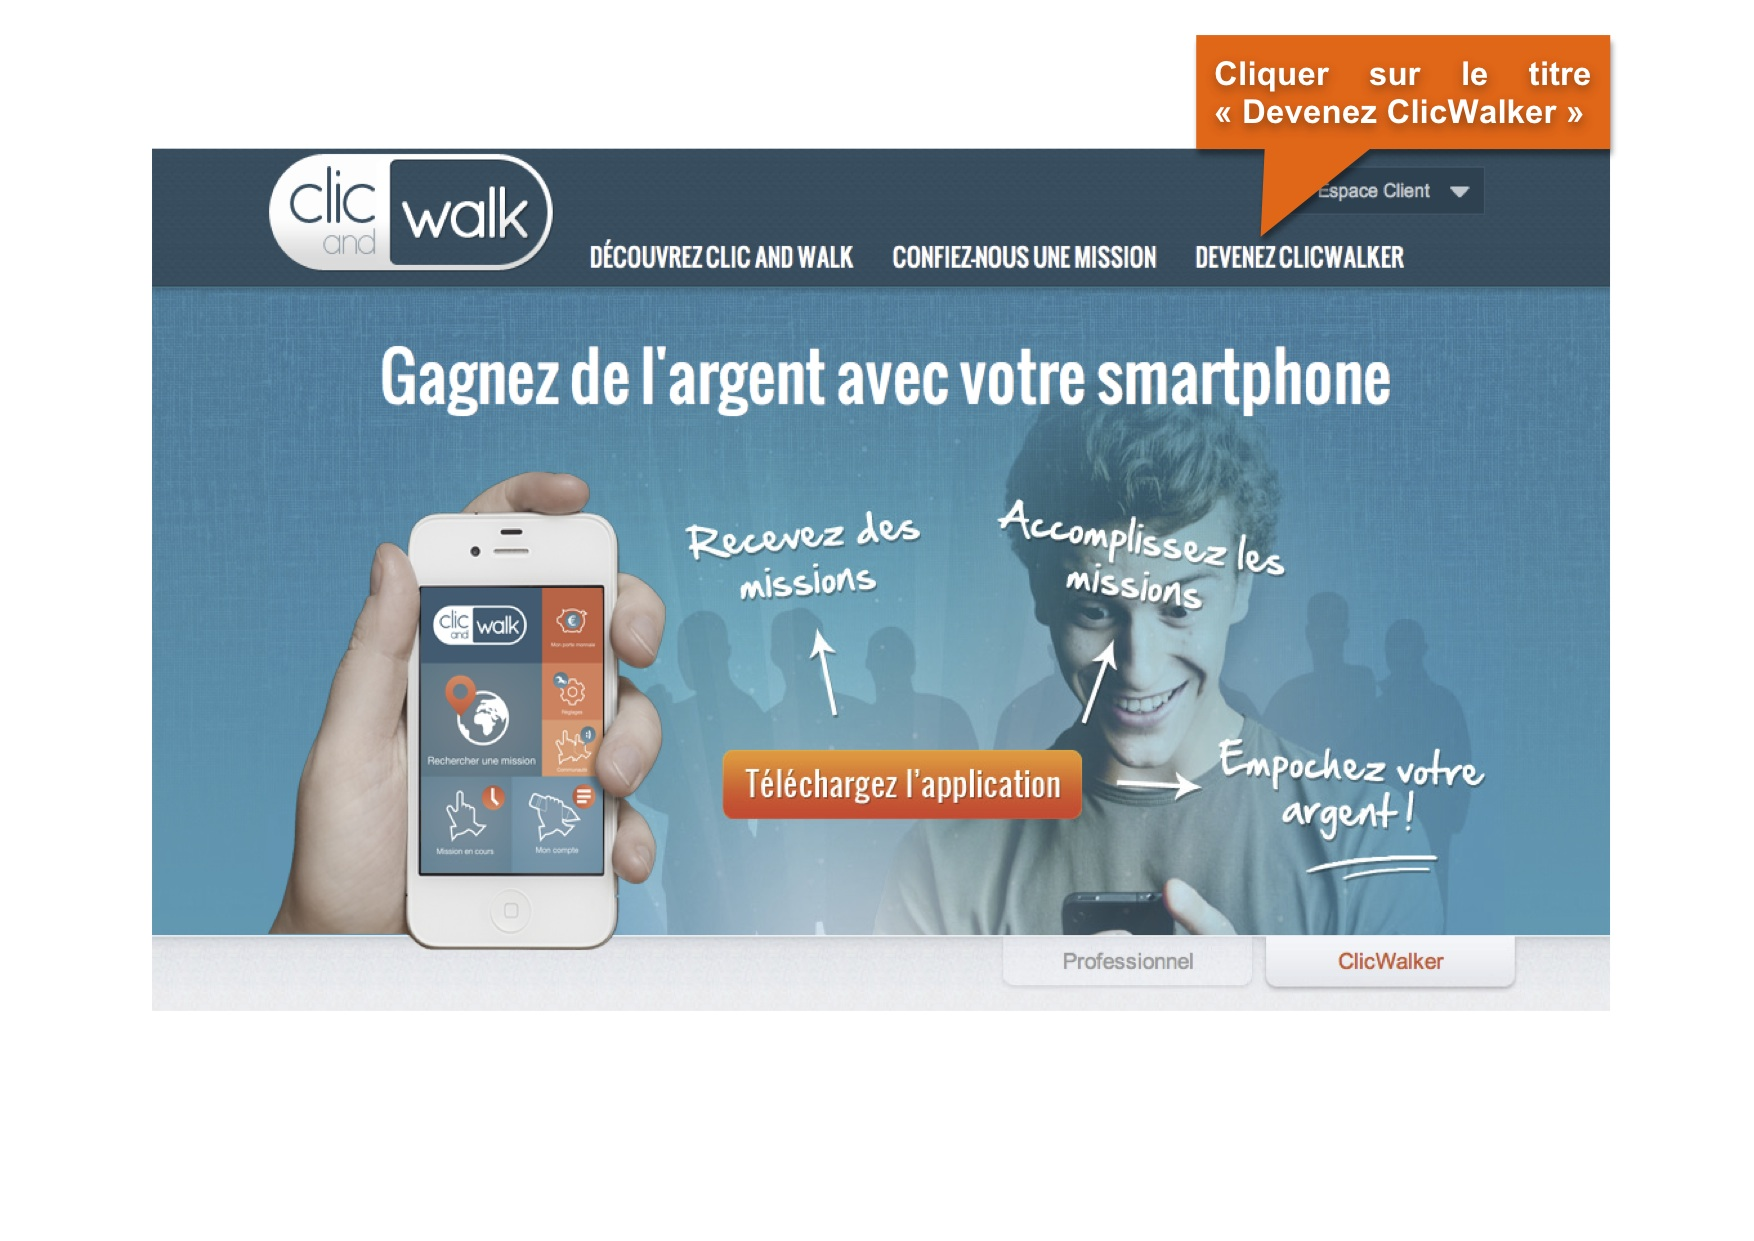 « Clic and walk » reinvents the customer satisfaction survey